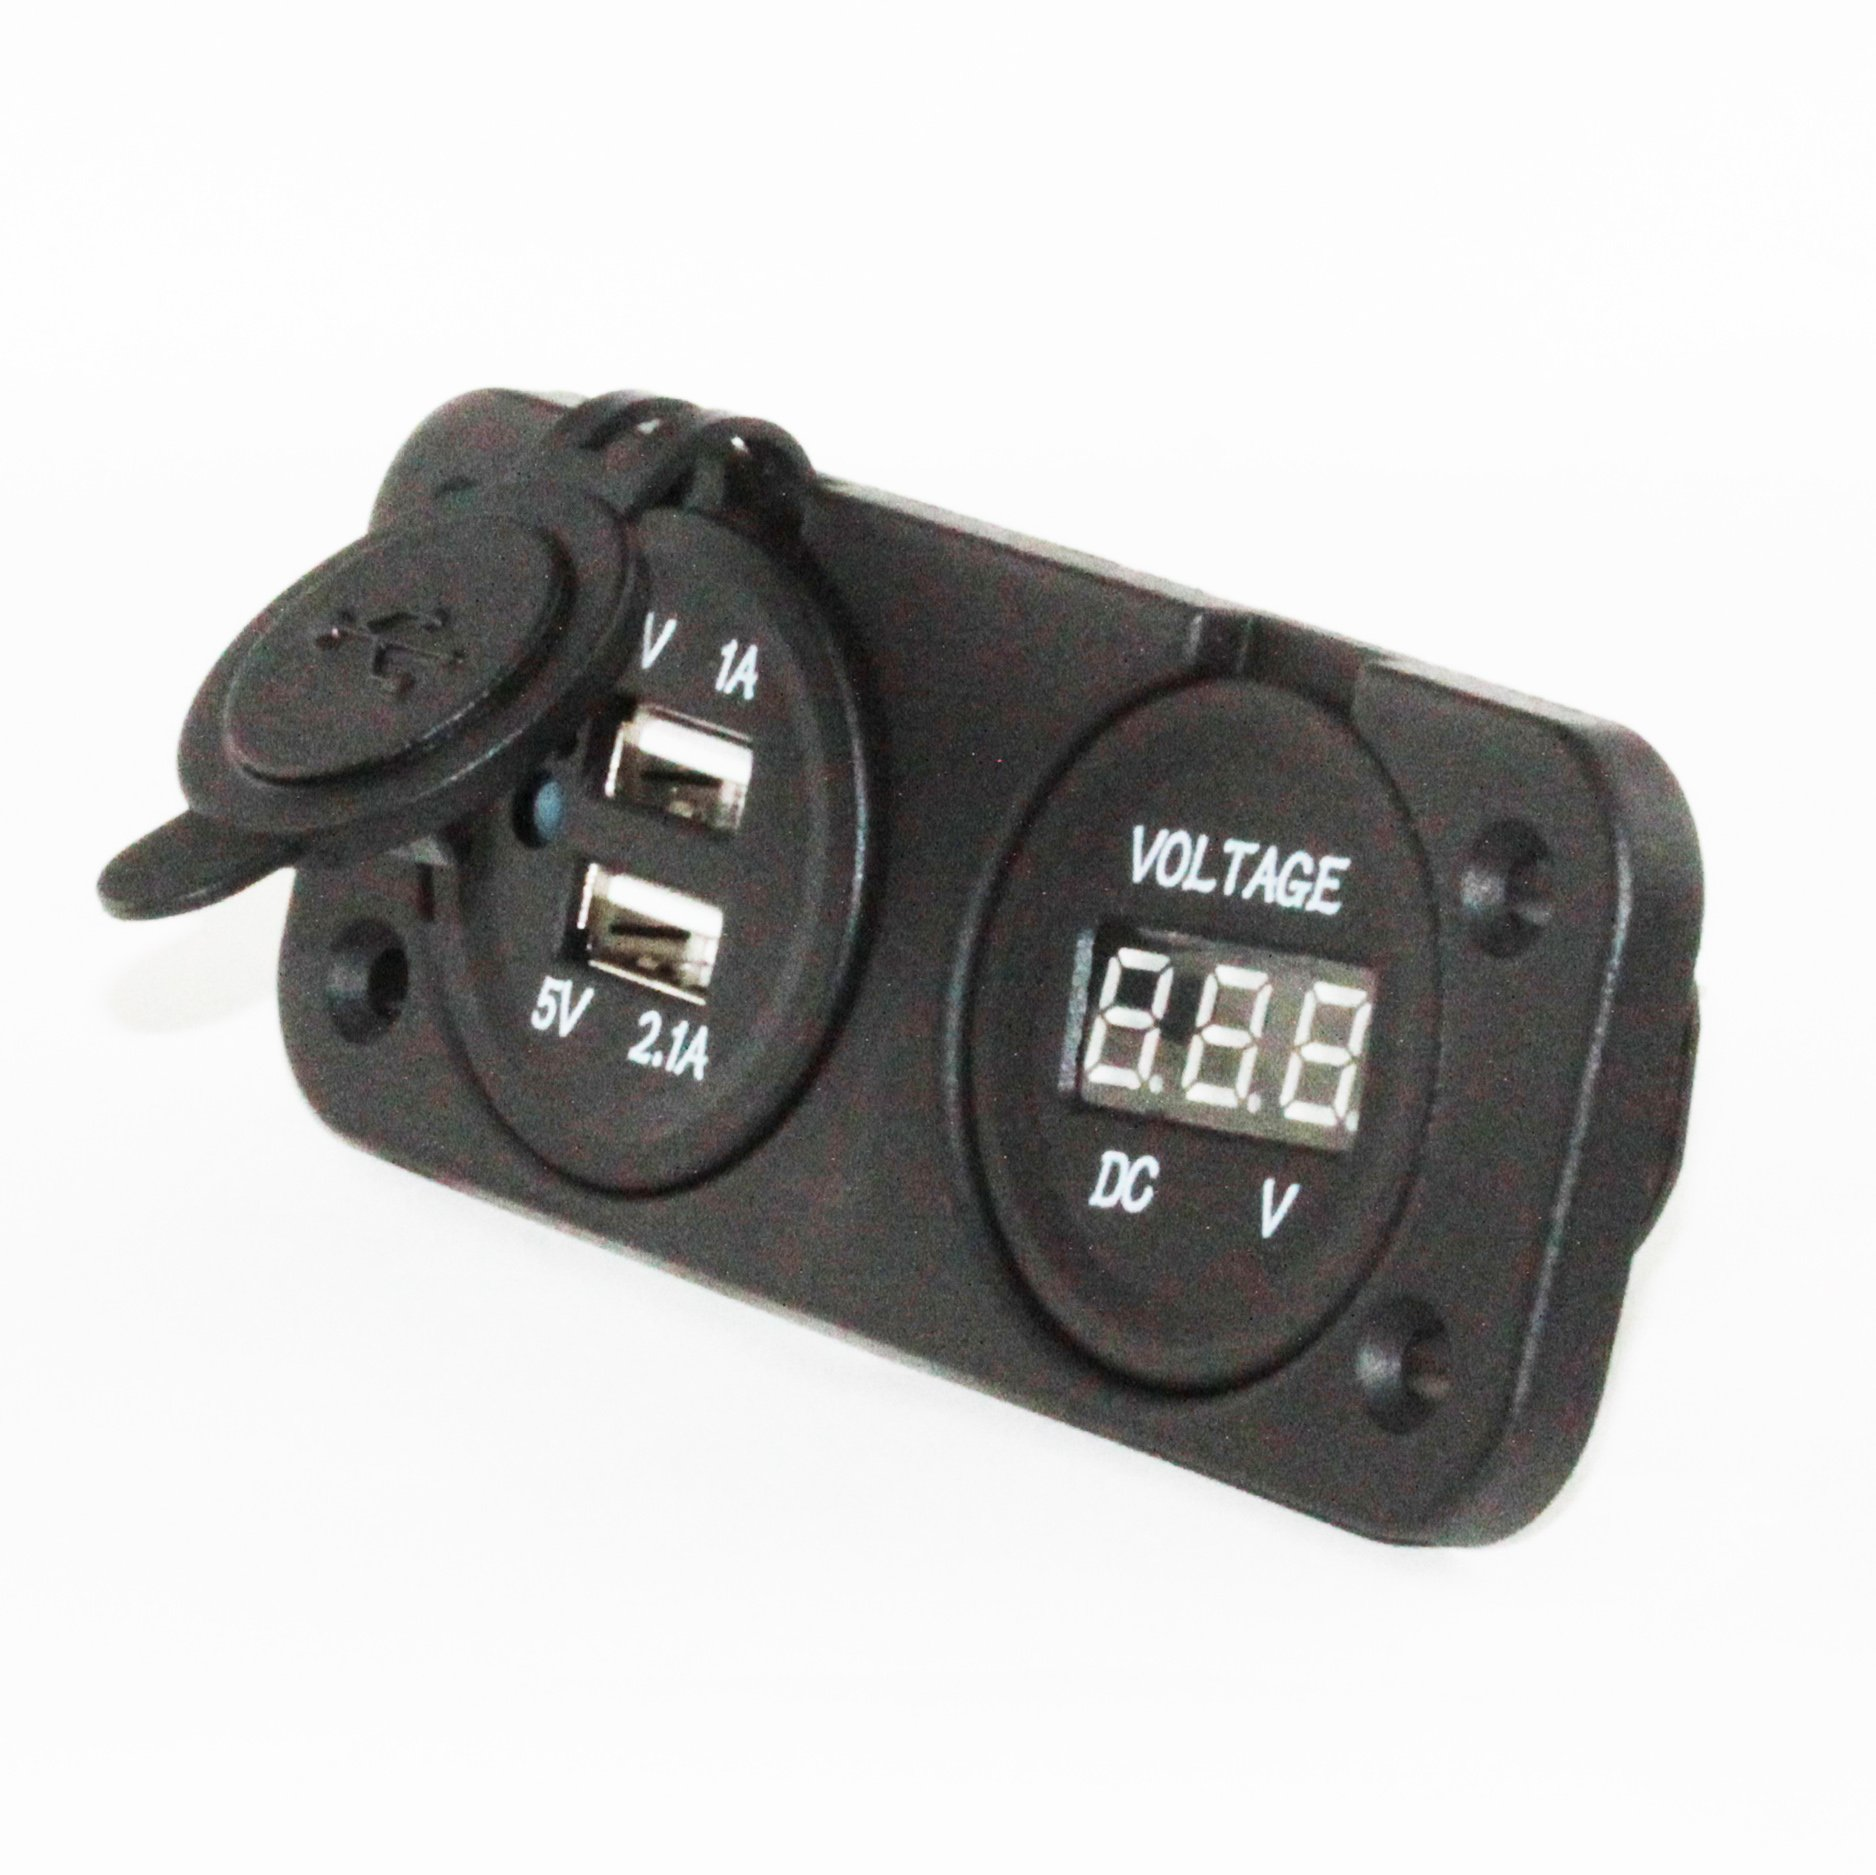 U.S. Solid Marine Grade Dual USB Charger Outlet and Digital Display Voltmeter DC 12V